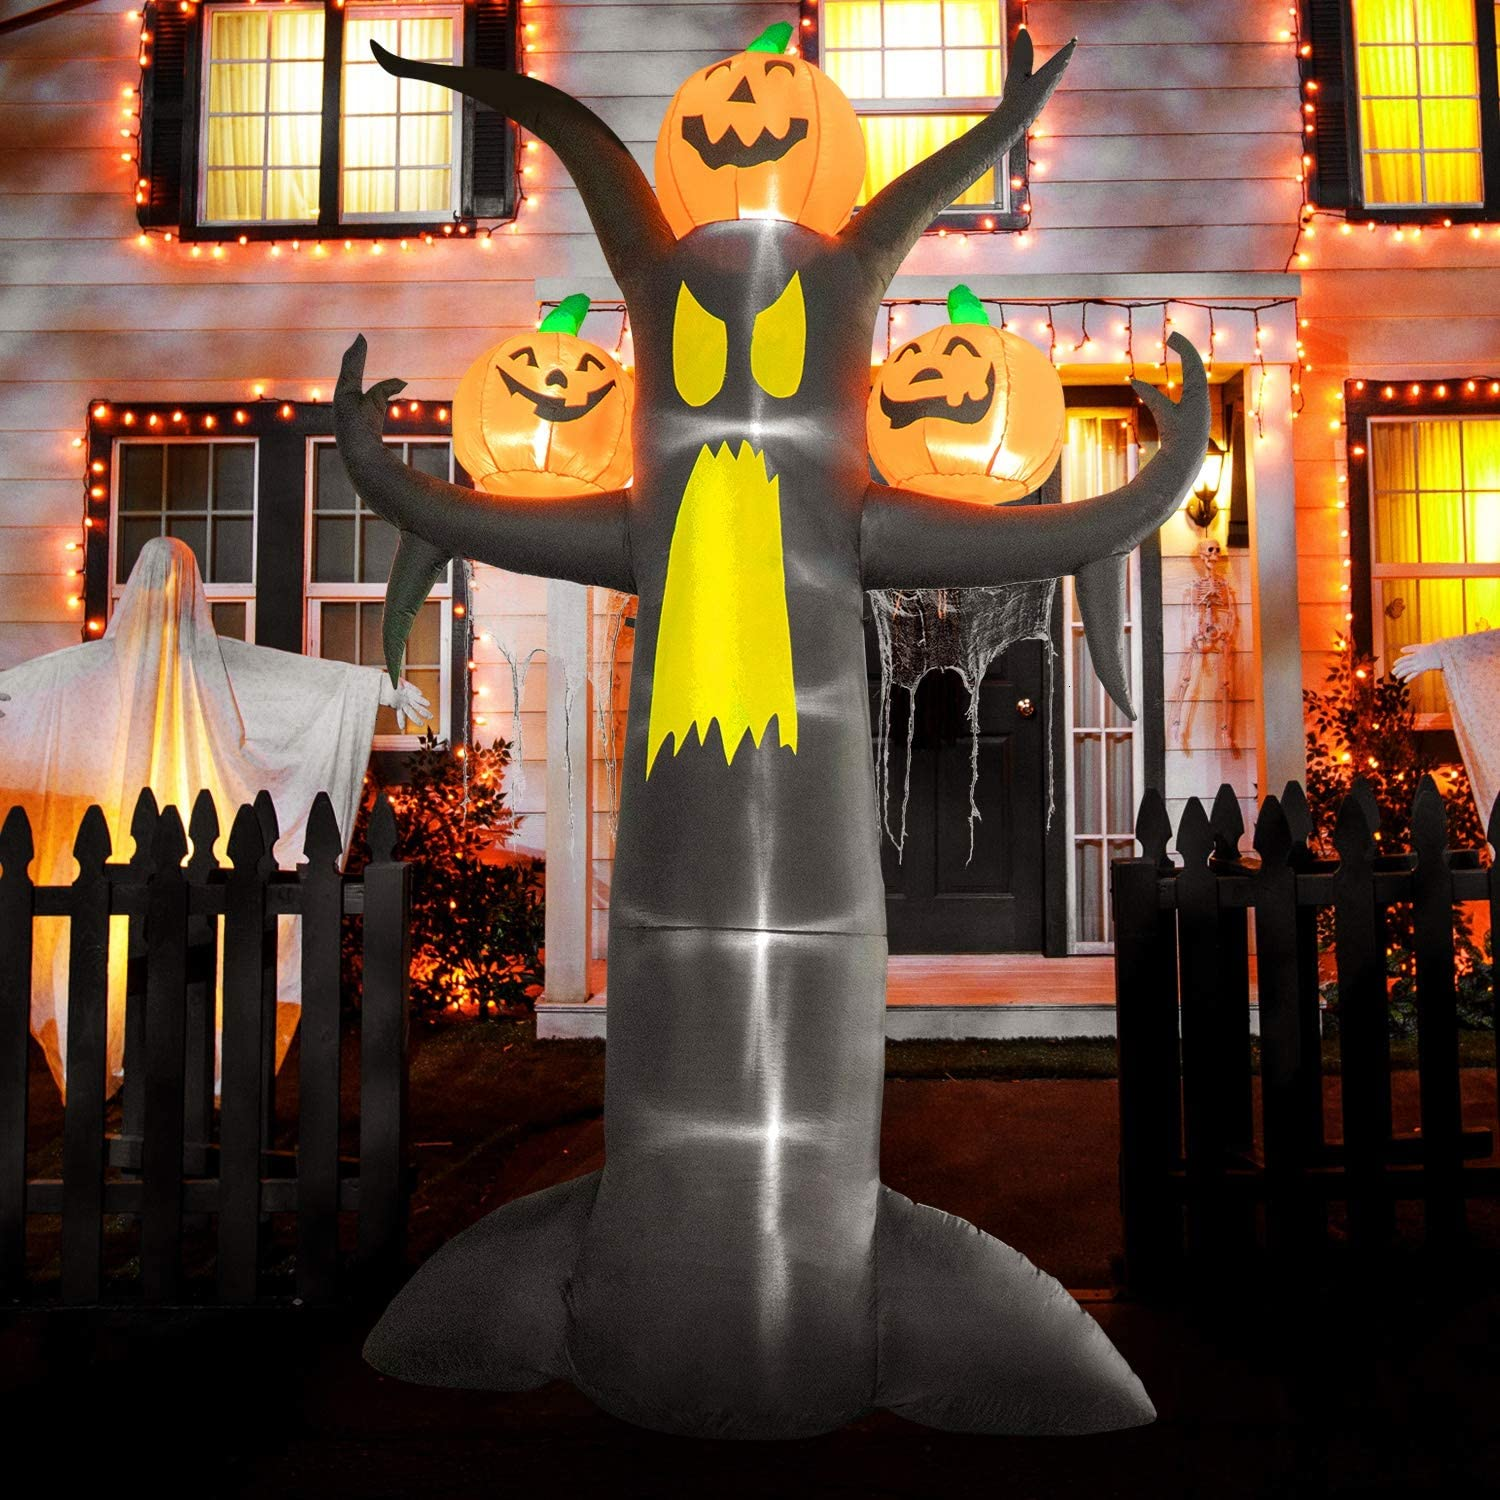 Rocinha 10 ft Halloween Inflatables Time sale with Charlotte Mall Tree Pumpkins Yard Dead